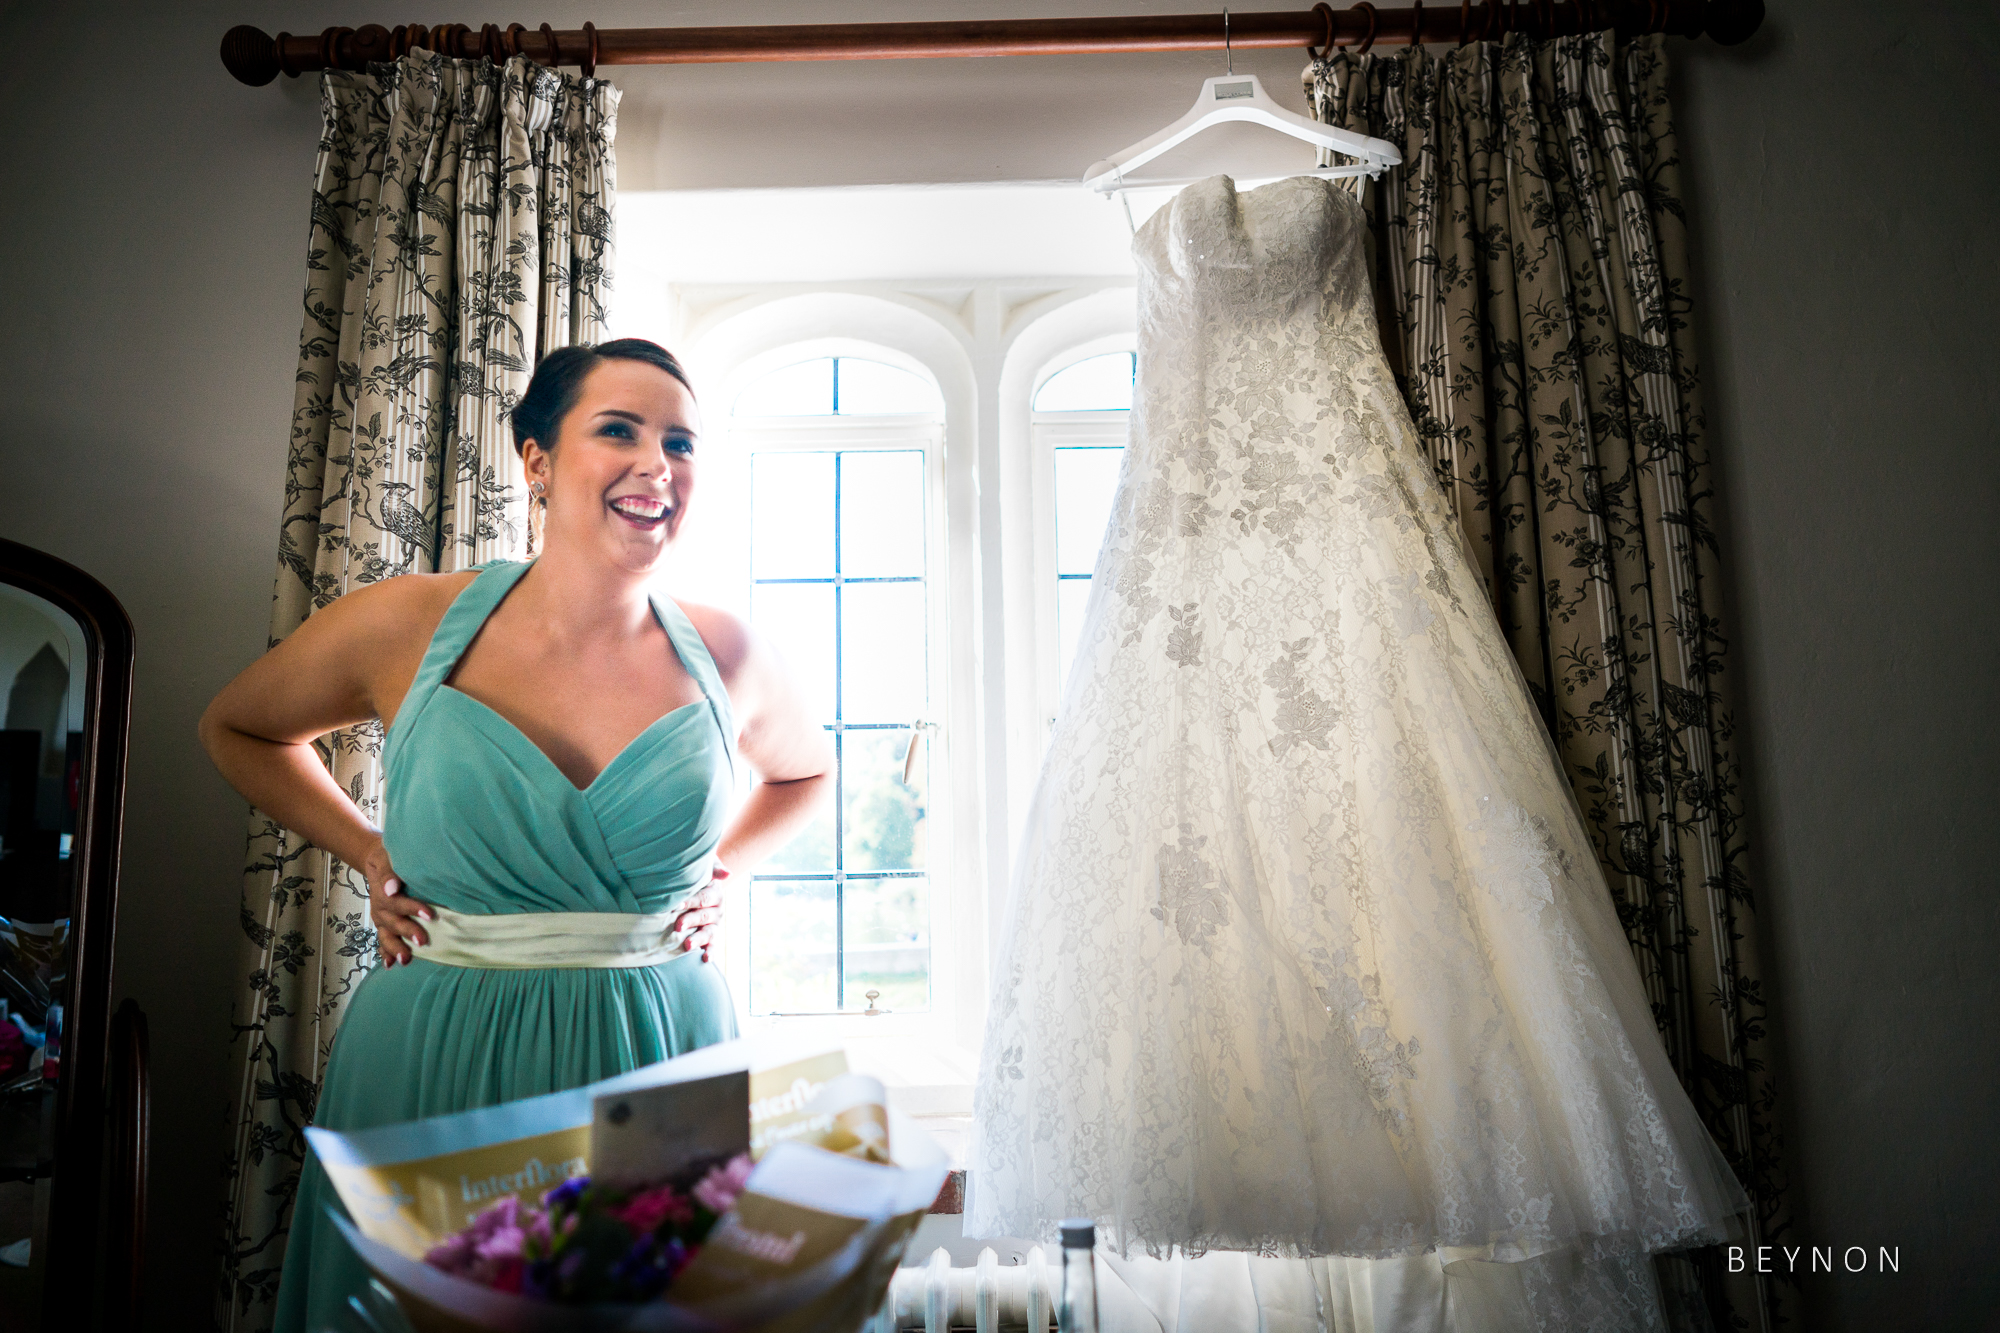 Bridesmaid stands next to wedding dress